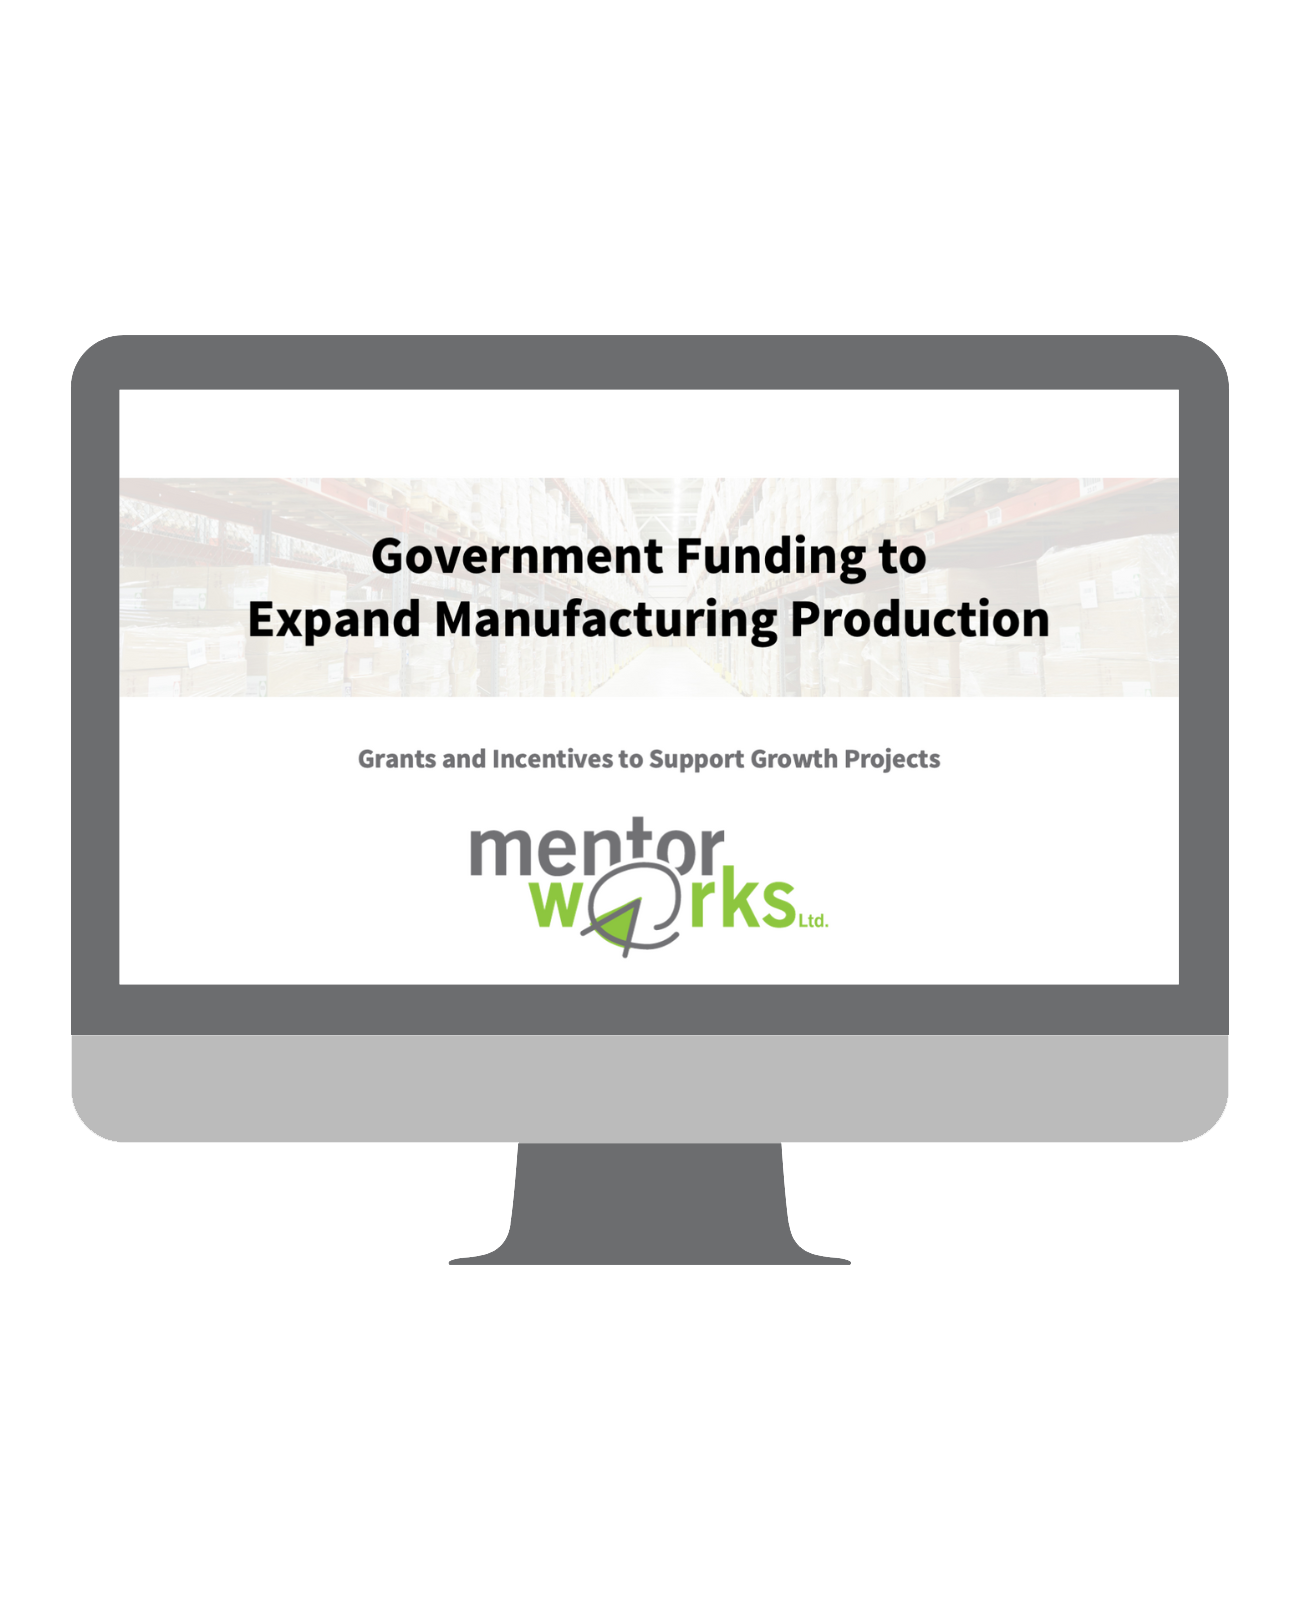 Government Funding to Expand Manufacturing Production